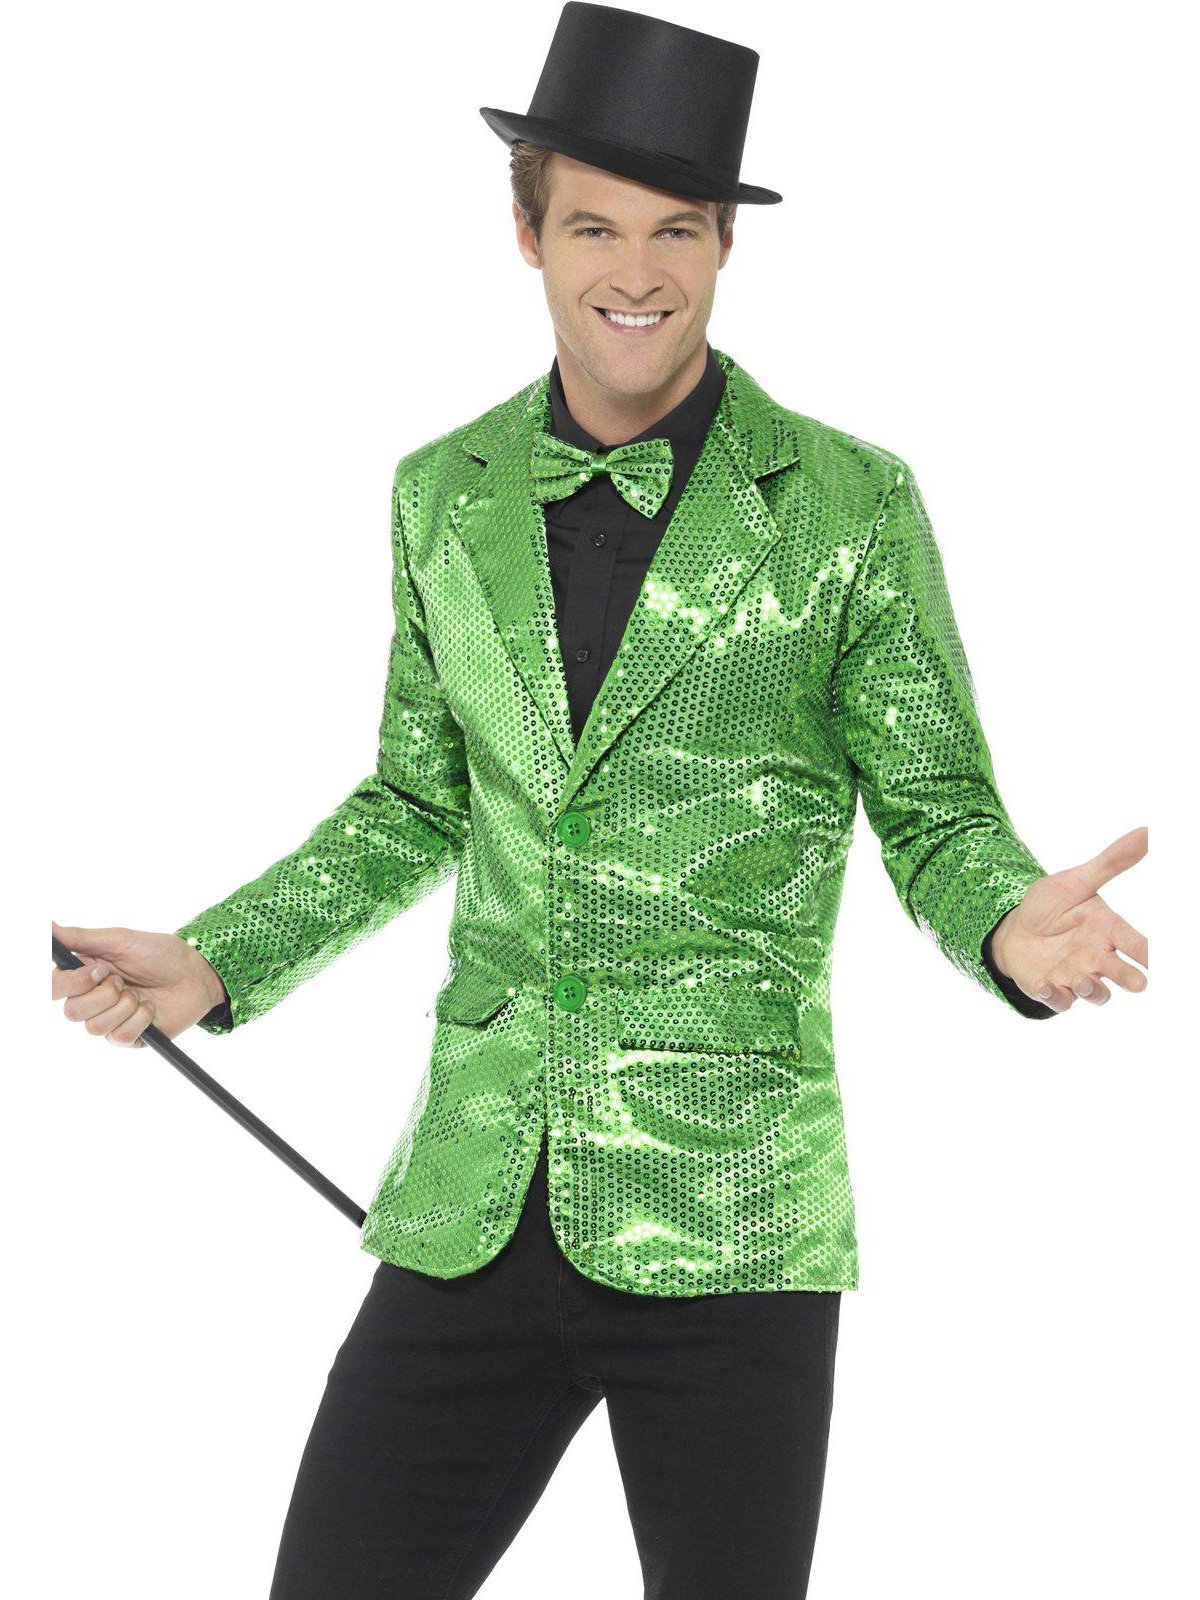 Smiffy's Men's Sequin Jacket, Green, Large by Smiffy's